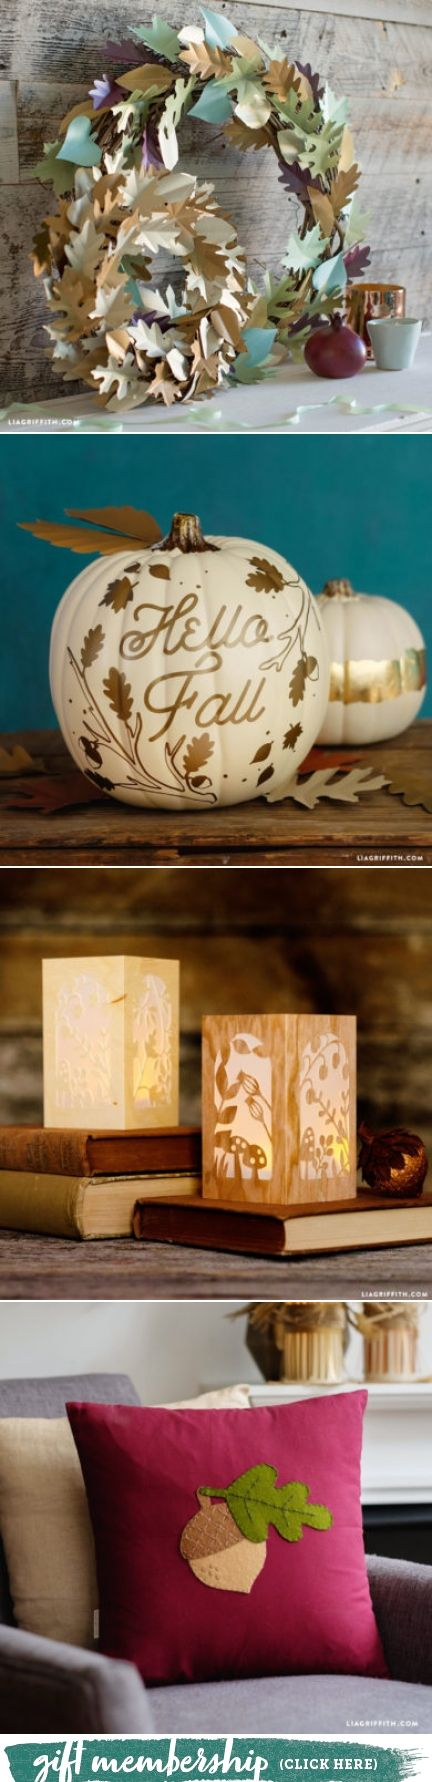 Fall into DIY Home Decor - Lia Griffith - www.liagriffith.com #diyfalldecor #diyhomedecor #falldecor #diyinspiration #madewithlia